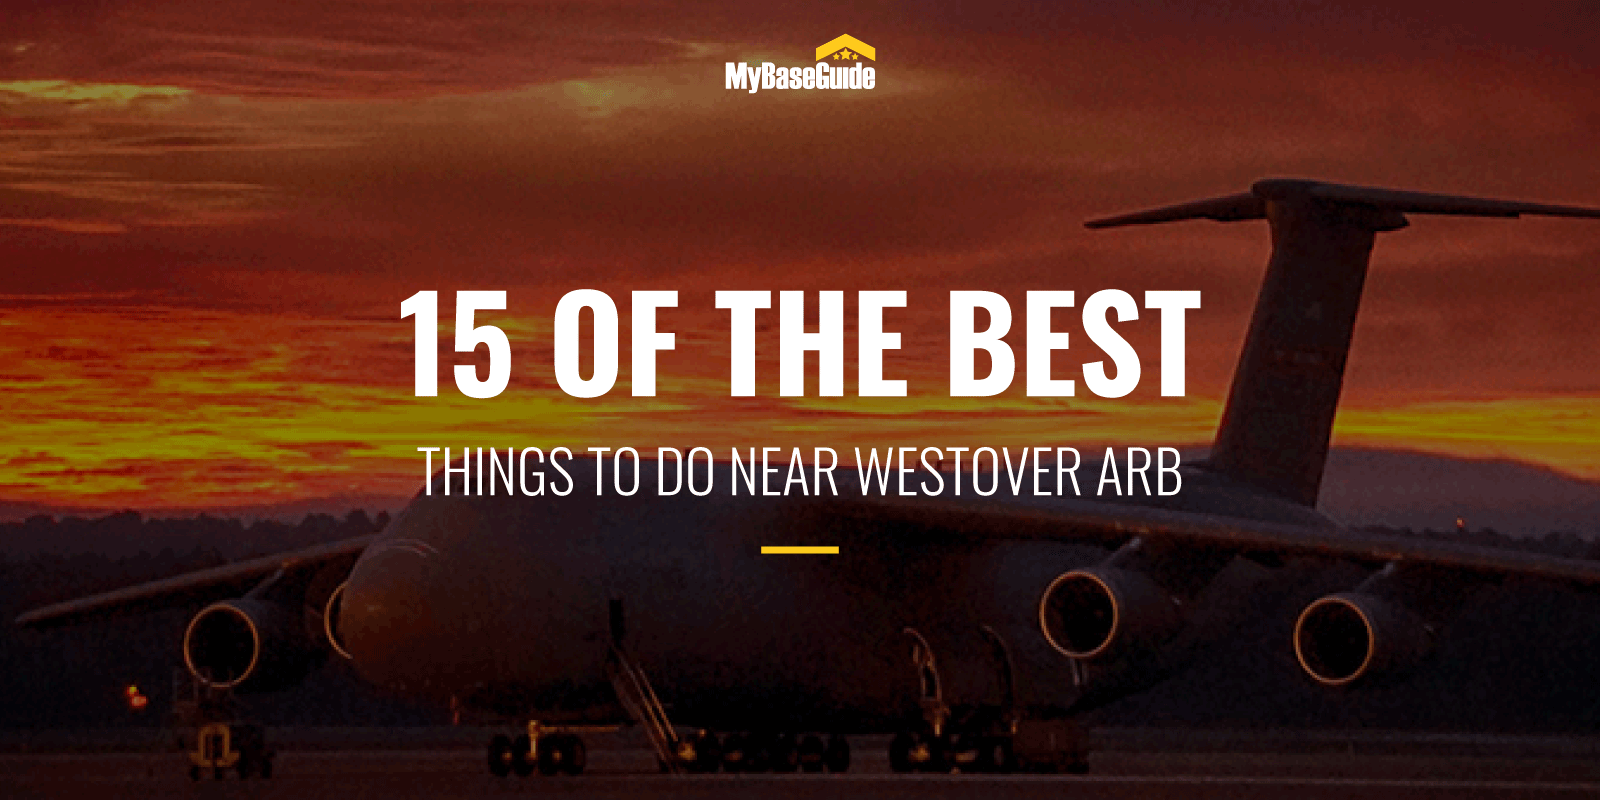 15 Of the Best Things to Do Near Westover ARB